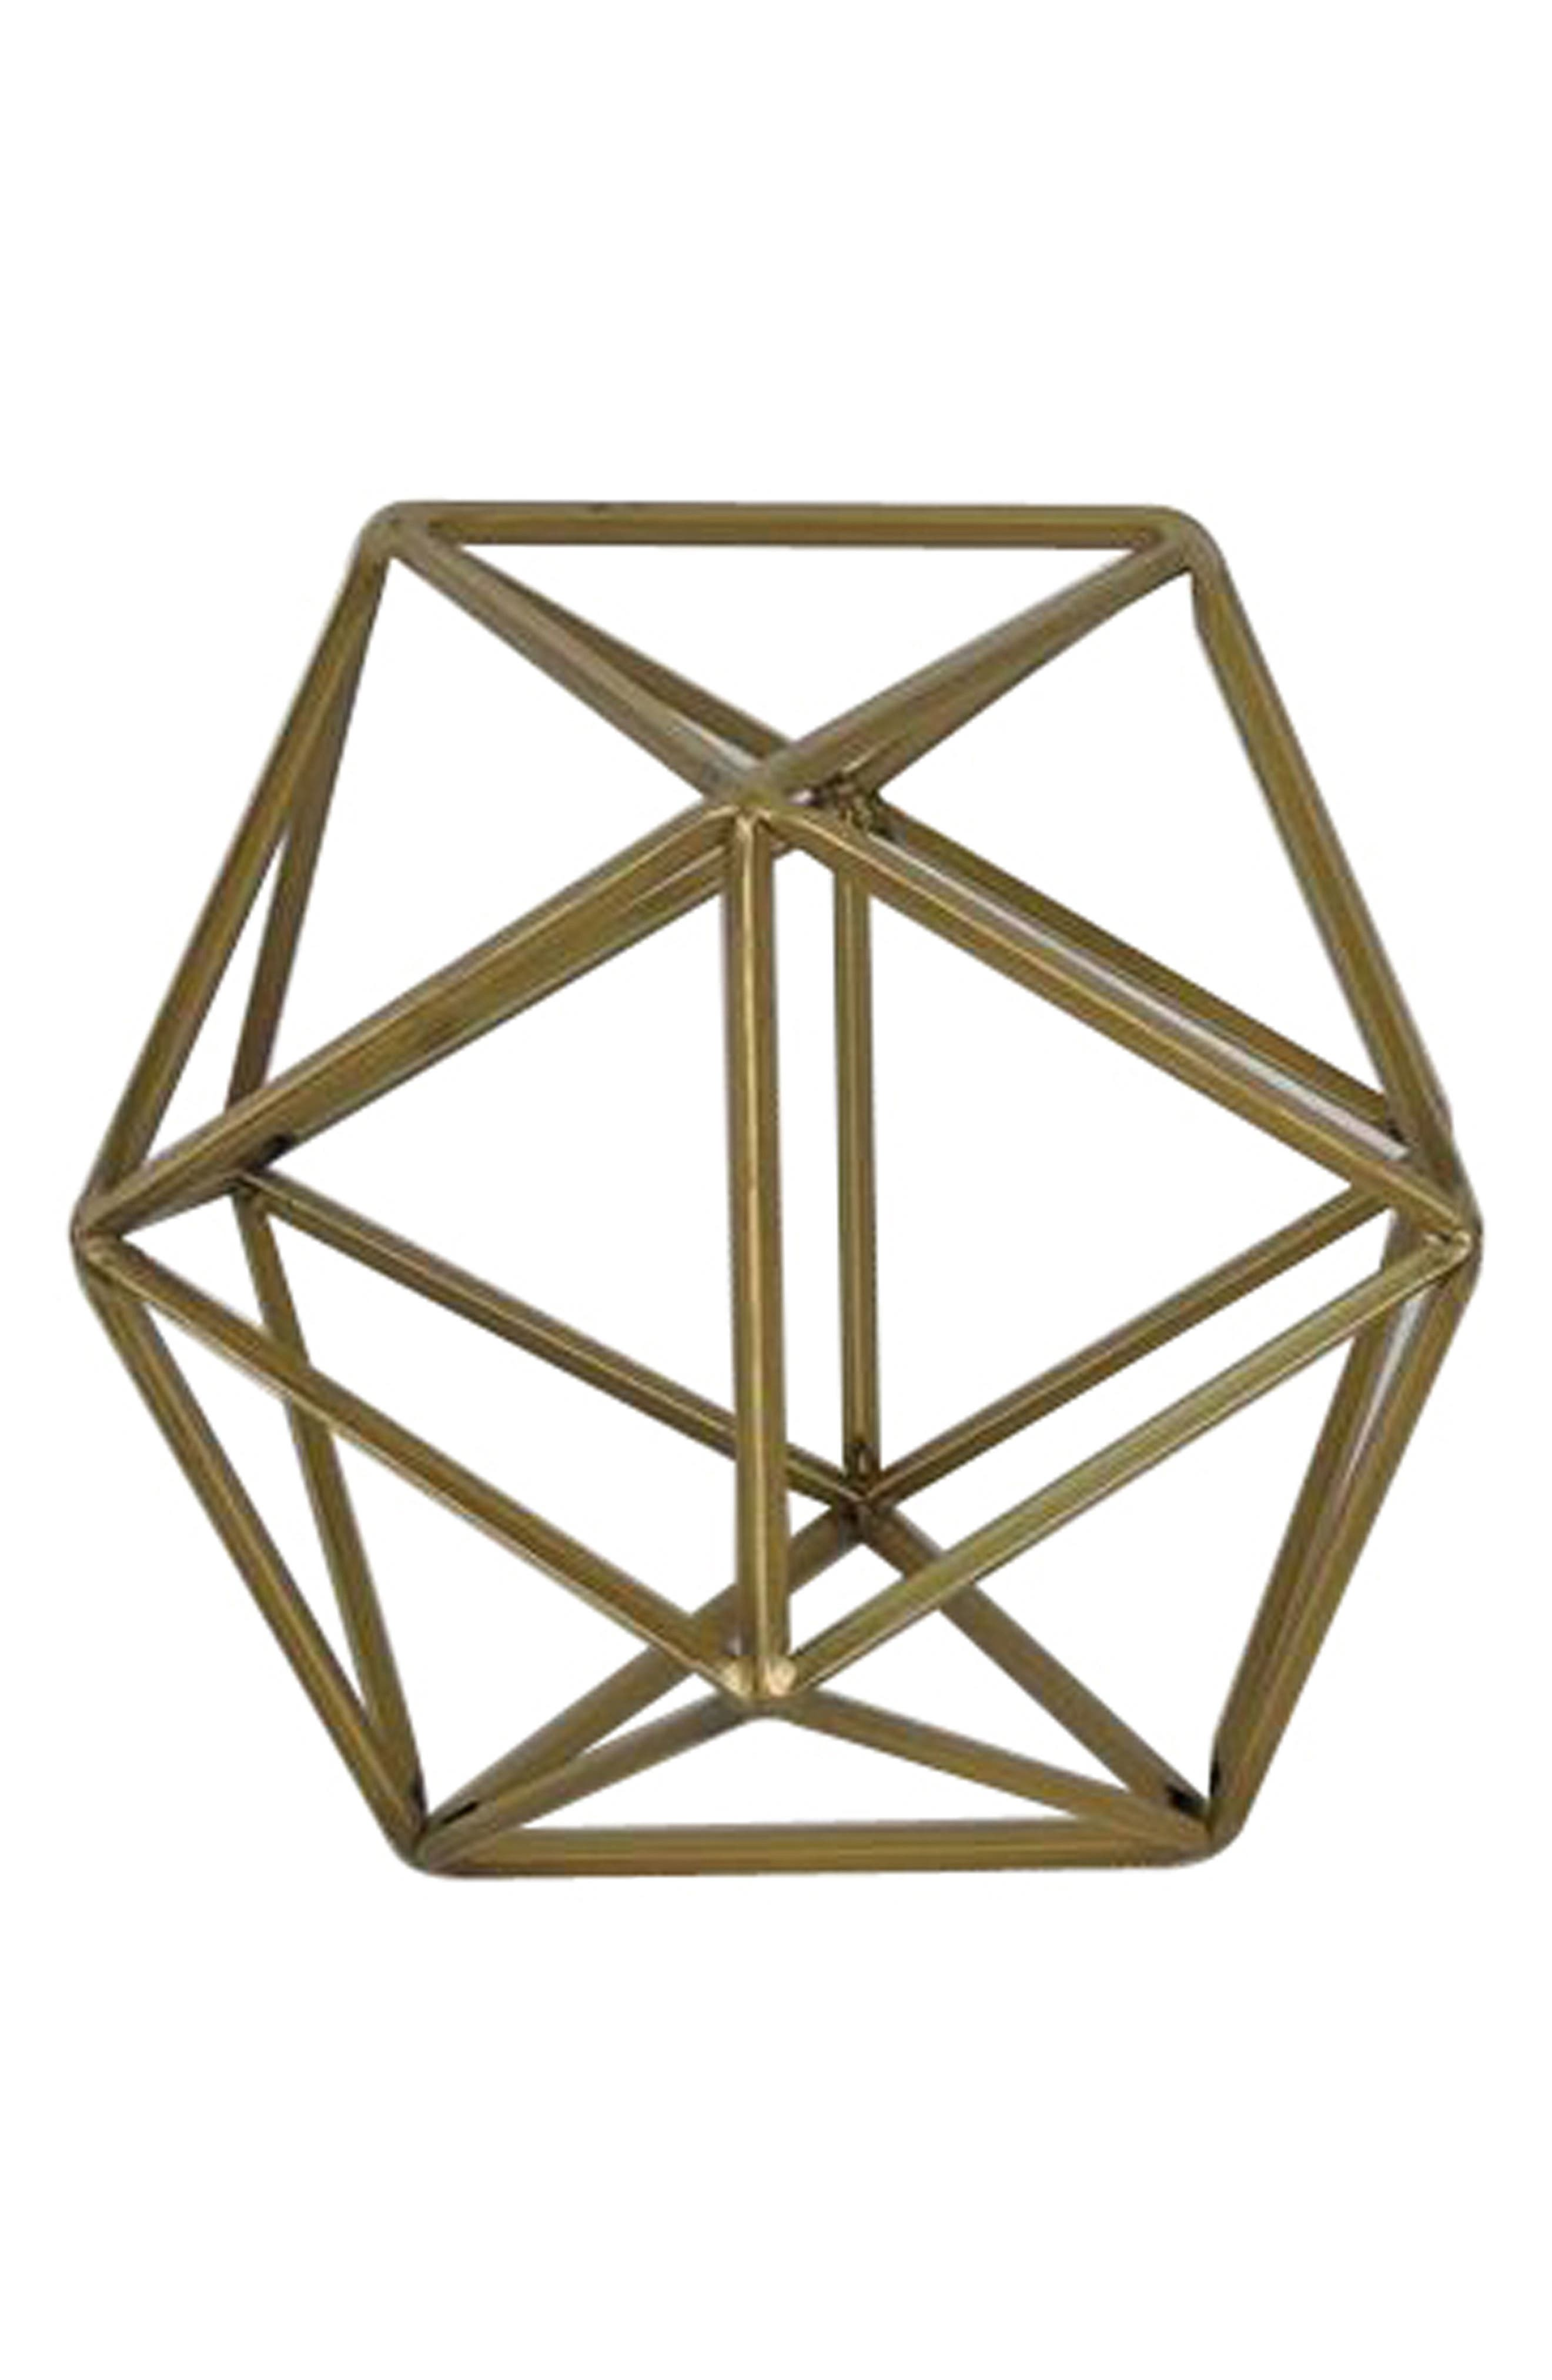 Crystal Art Galley Geometric Metal Tabletop Decoration,                             Main thumbnail 1, color,                             710